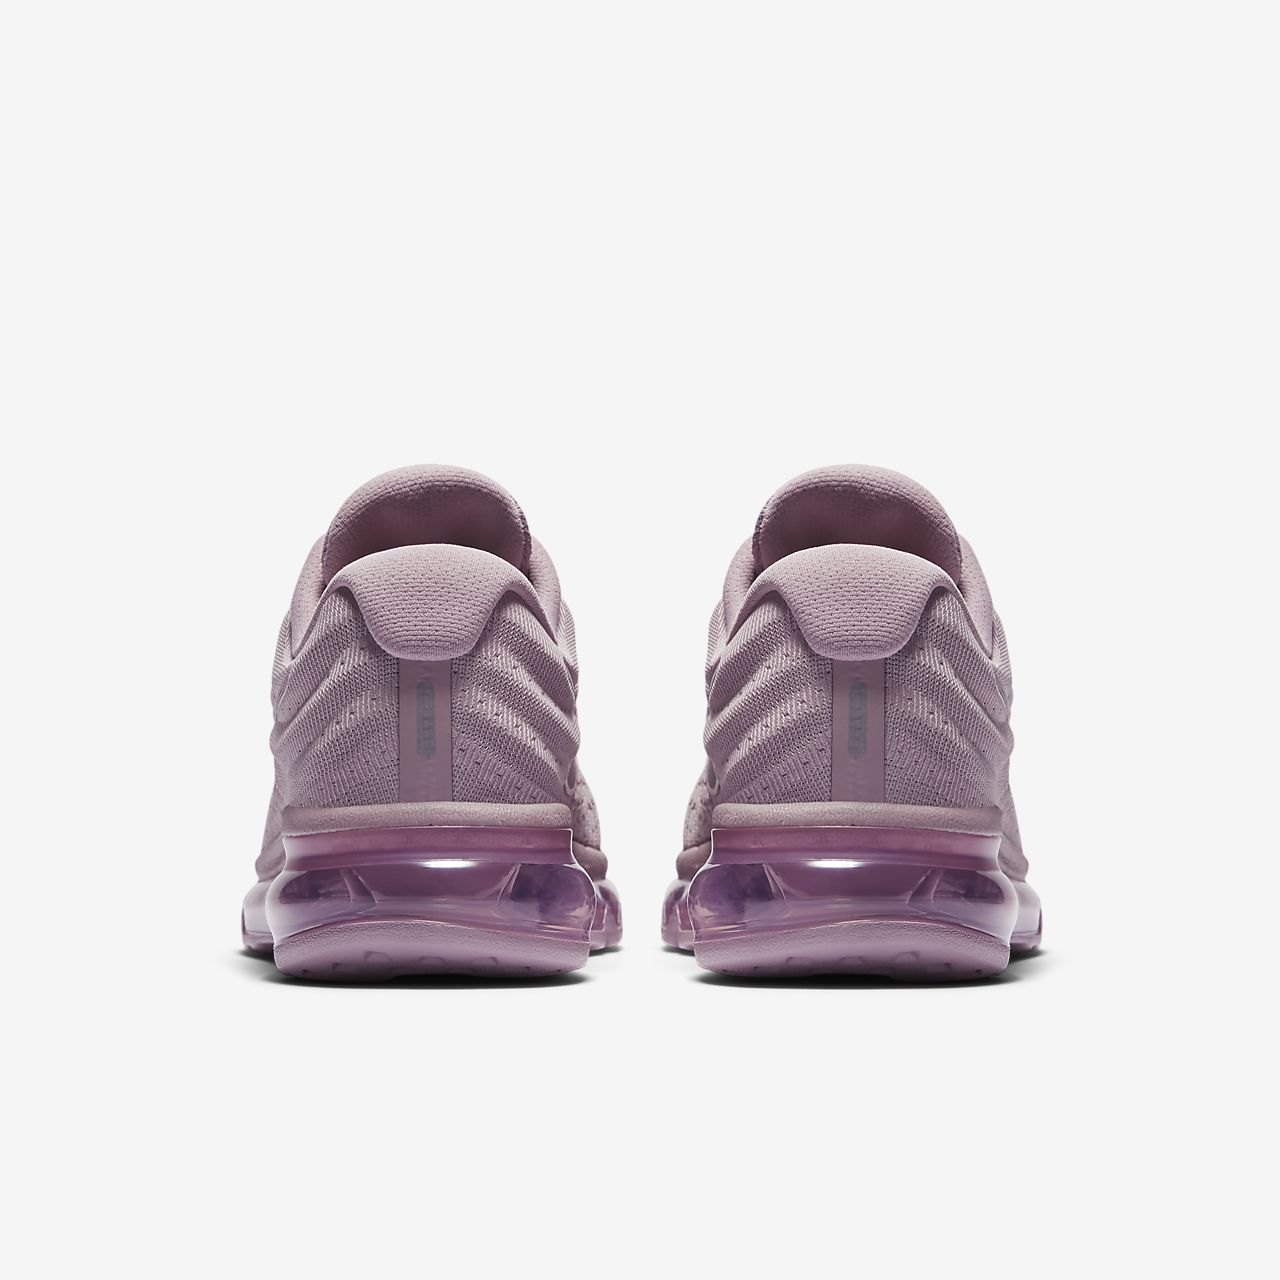 nike air max 2017 damen plum